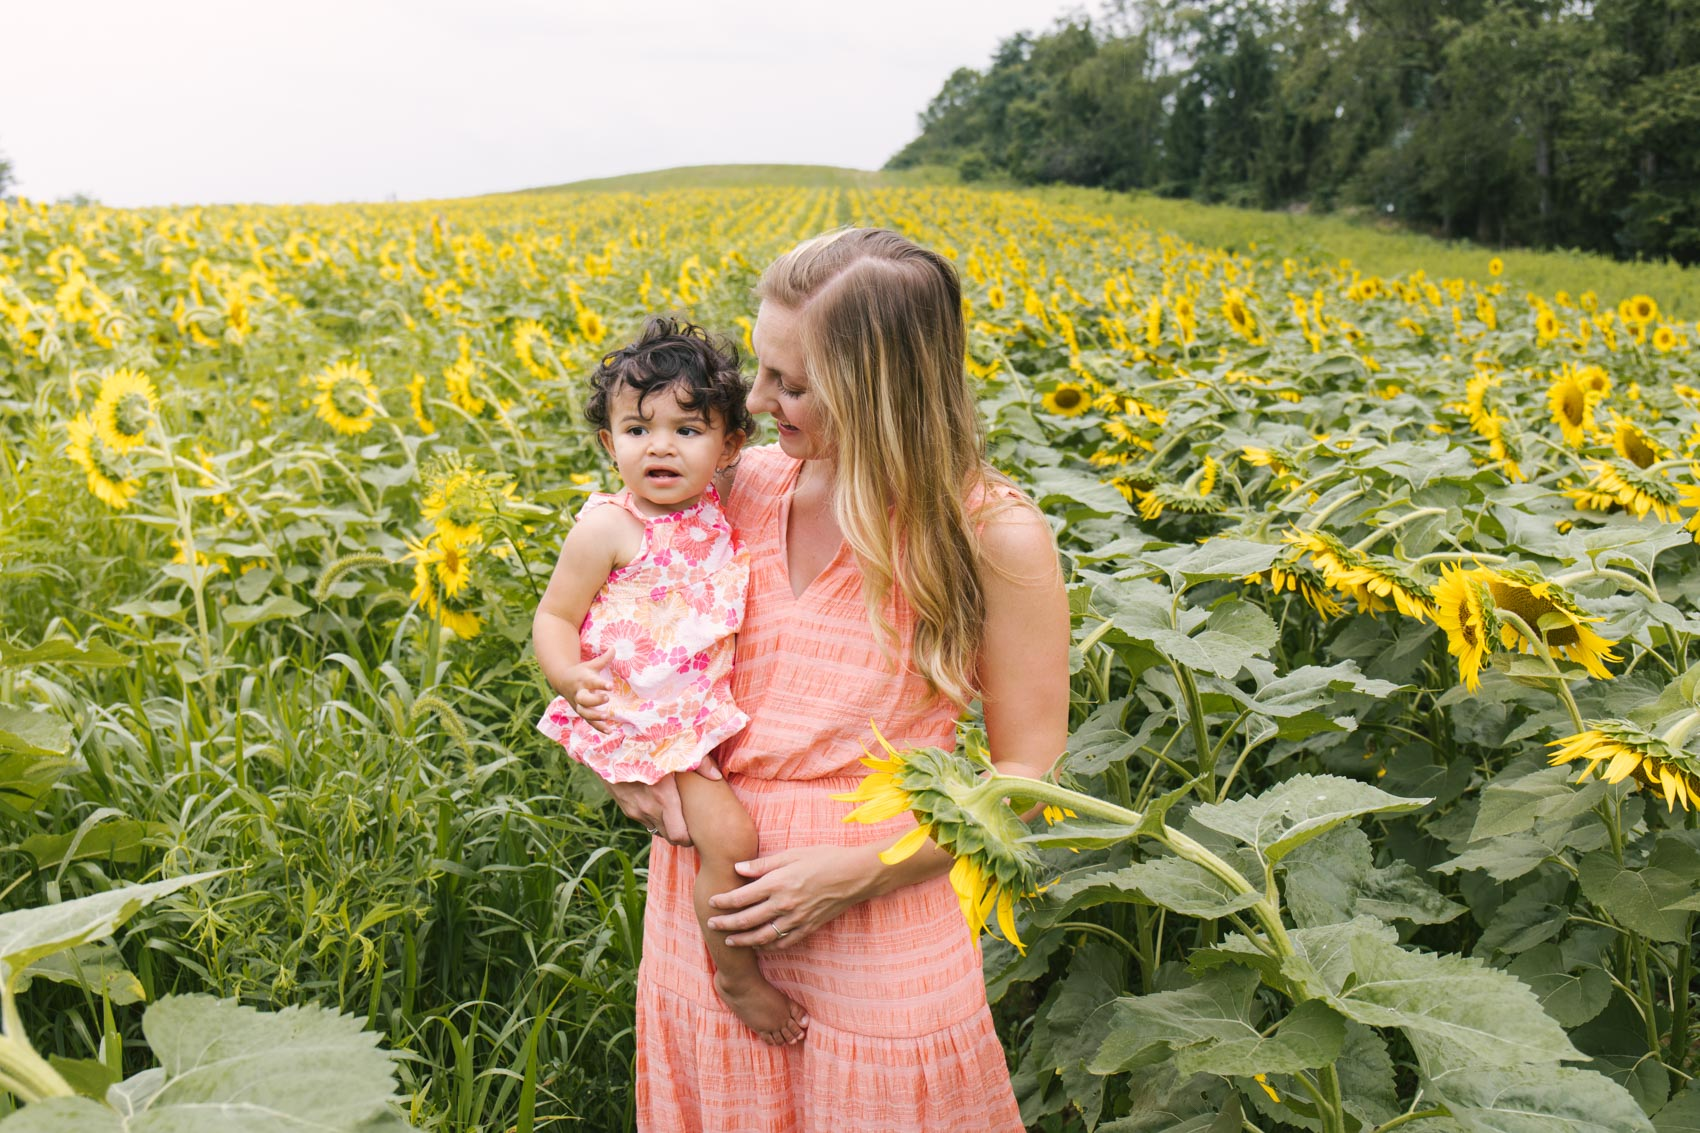 ideas on what to wear for sunflower field photos: coral outfits that coordinate